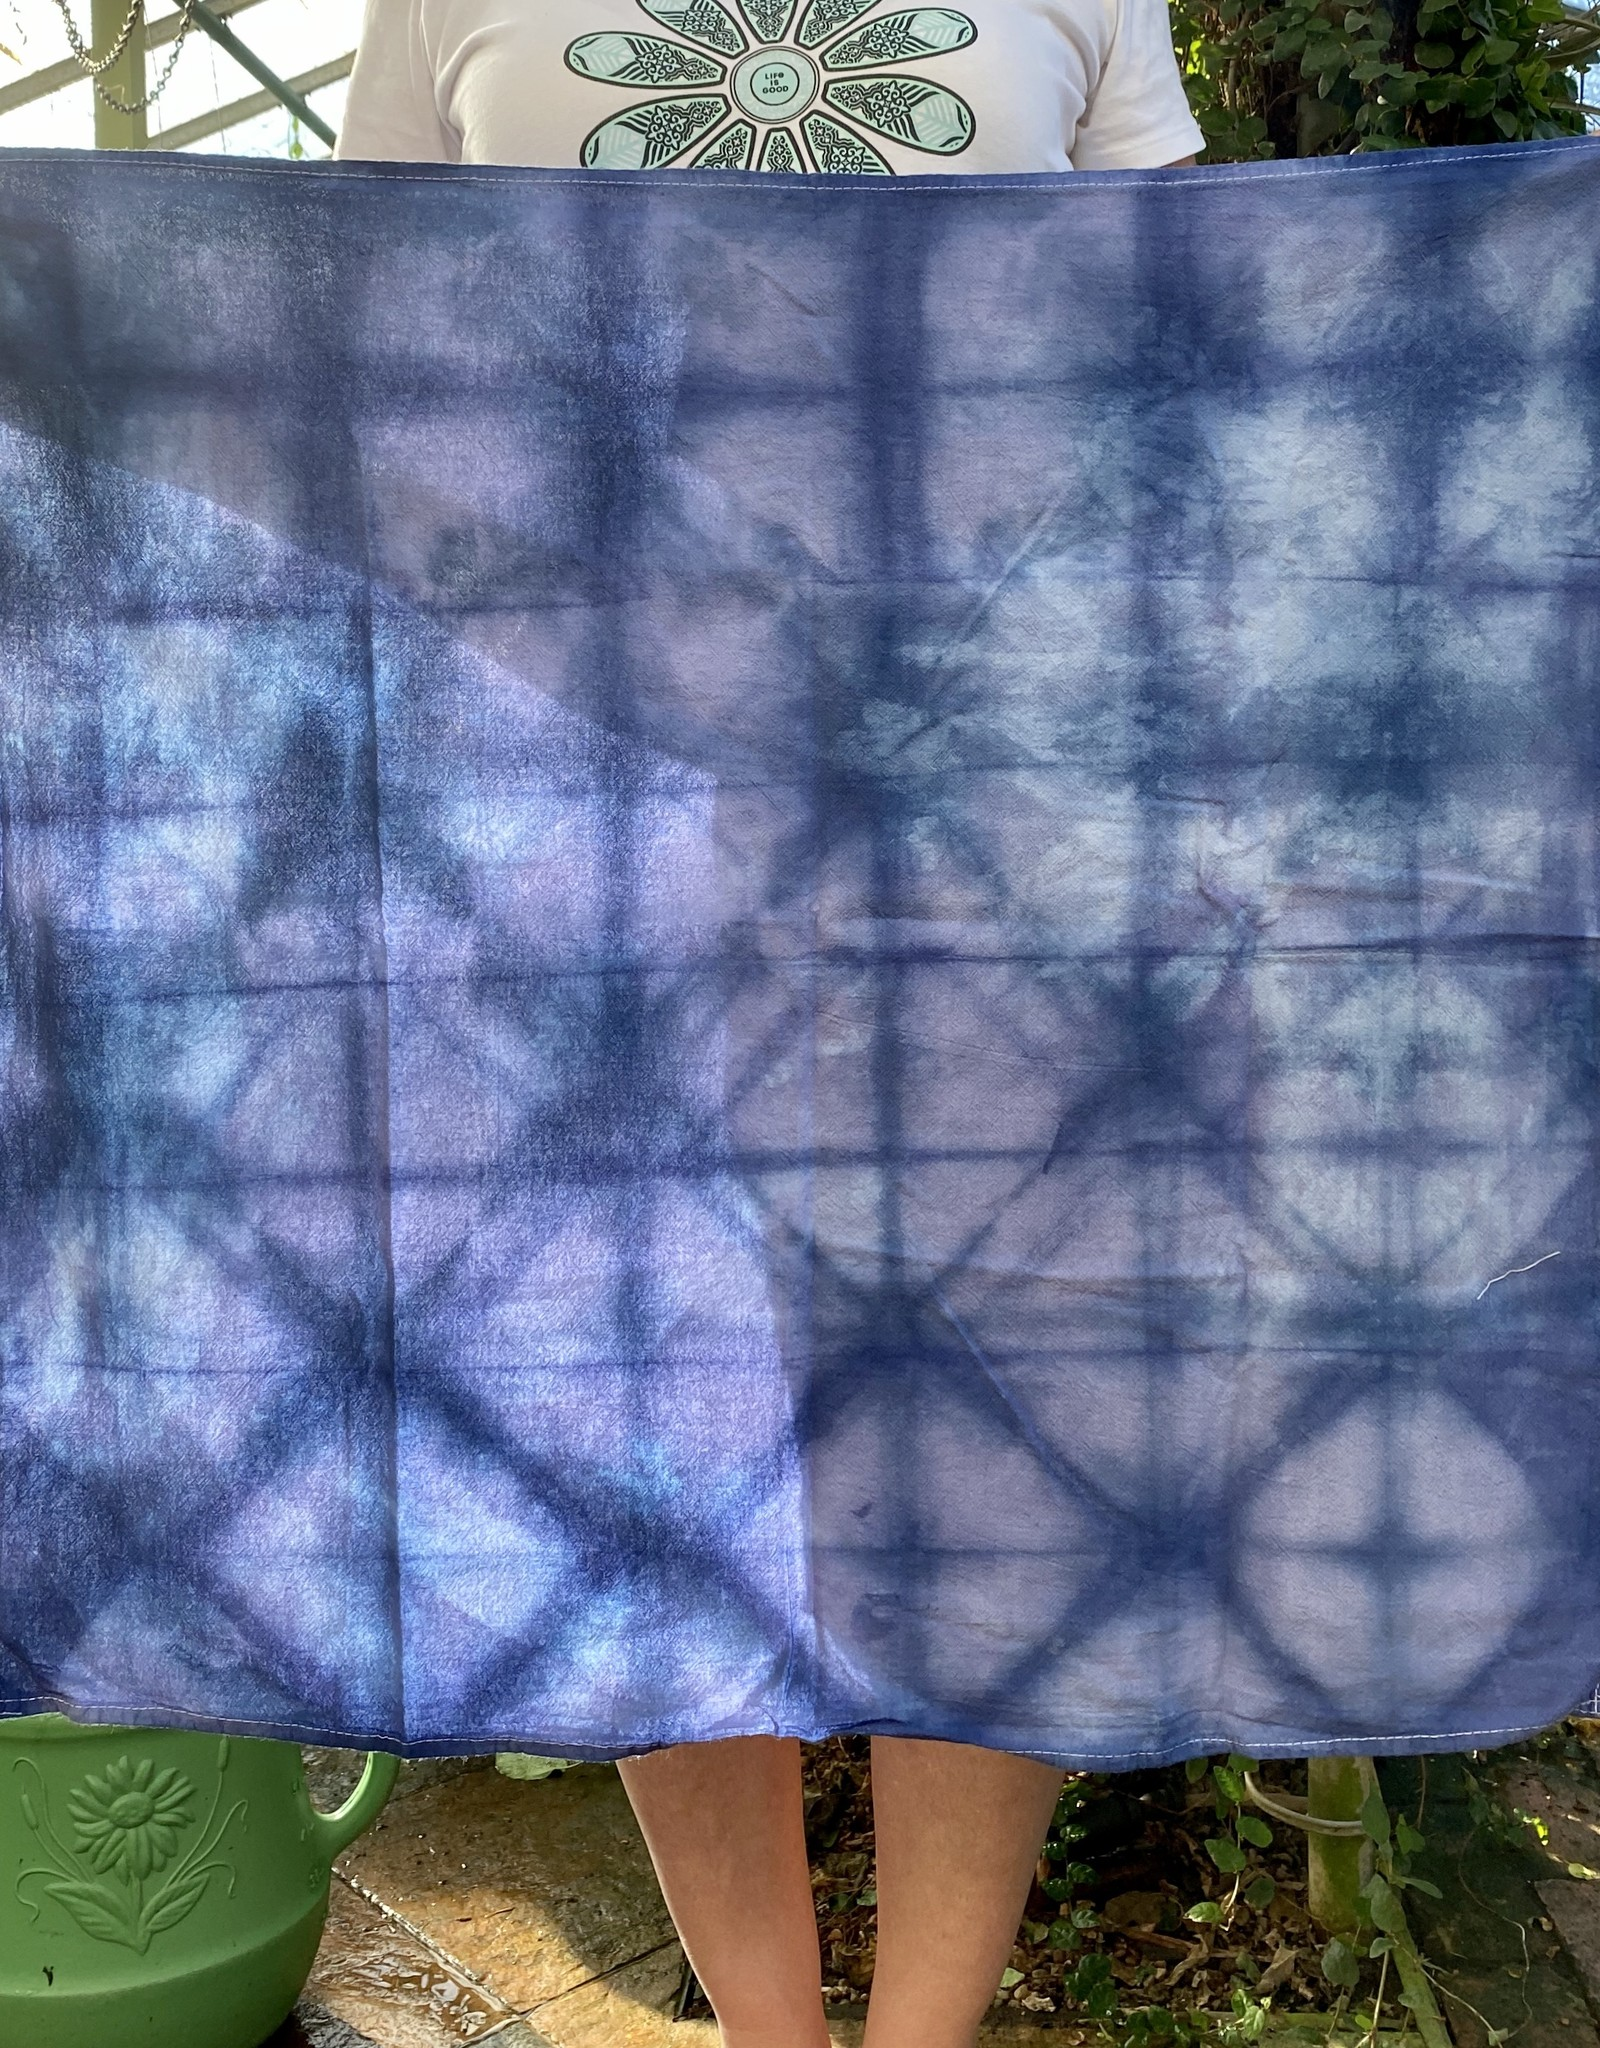 Hand-Dyed Tea Towels